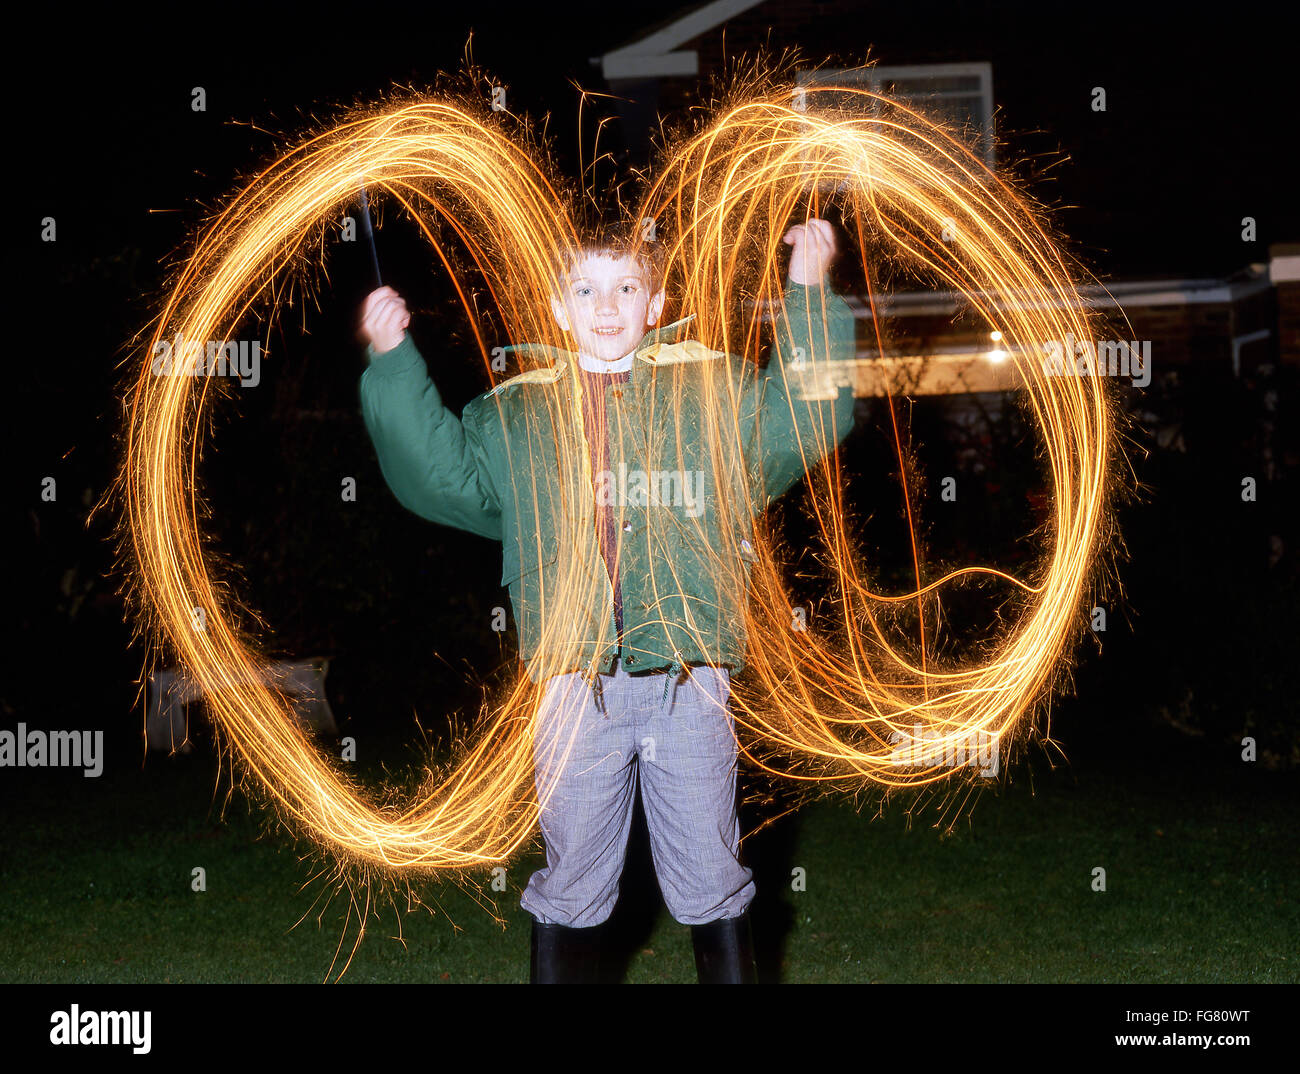 Young boy making circles with sparklers on Fireworks Night, Berkshire, England, United Kingdom - Stock Image